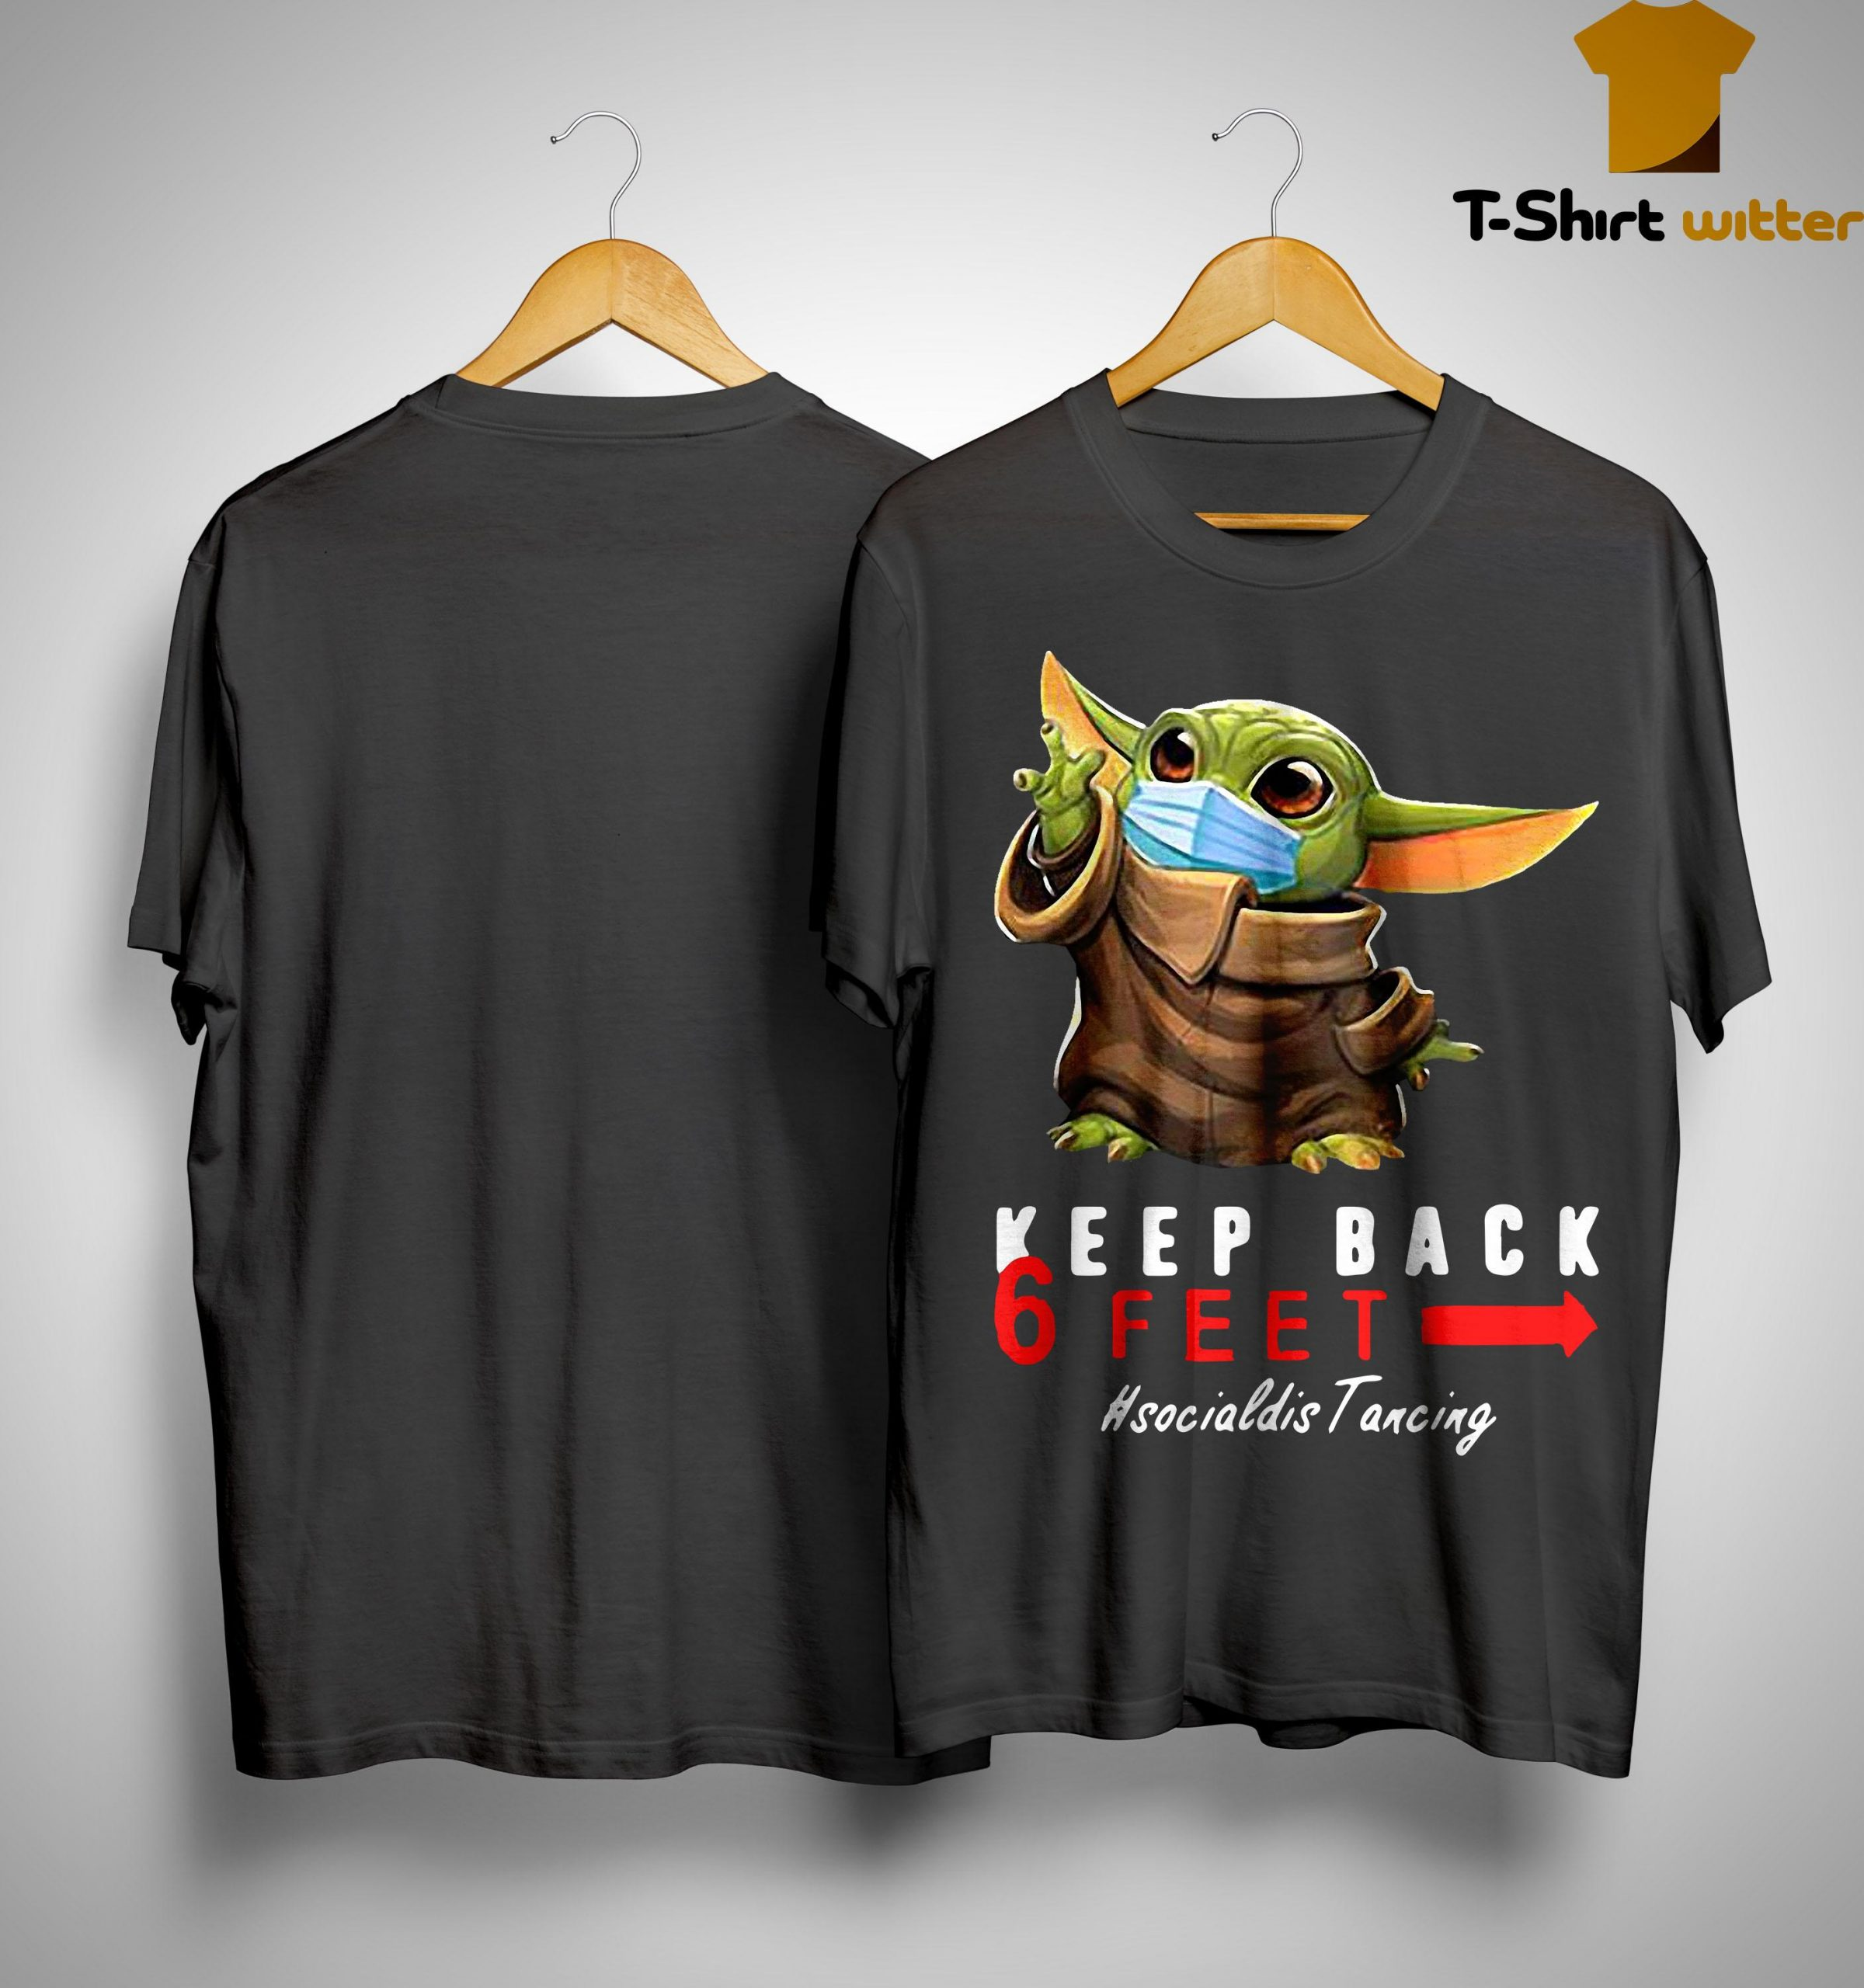 Baby Yoda Keep Back 6 Feet Social Distancing Shirt